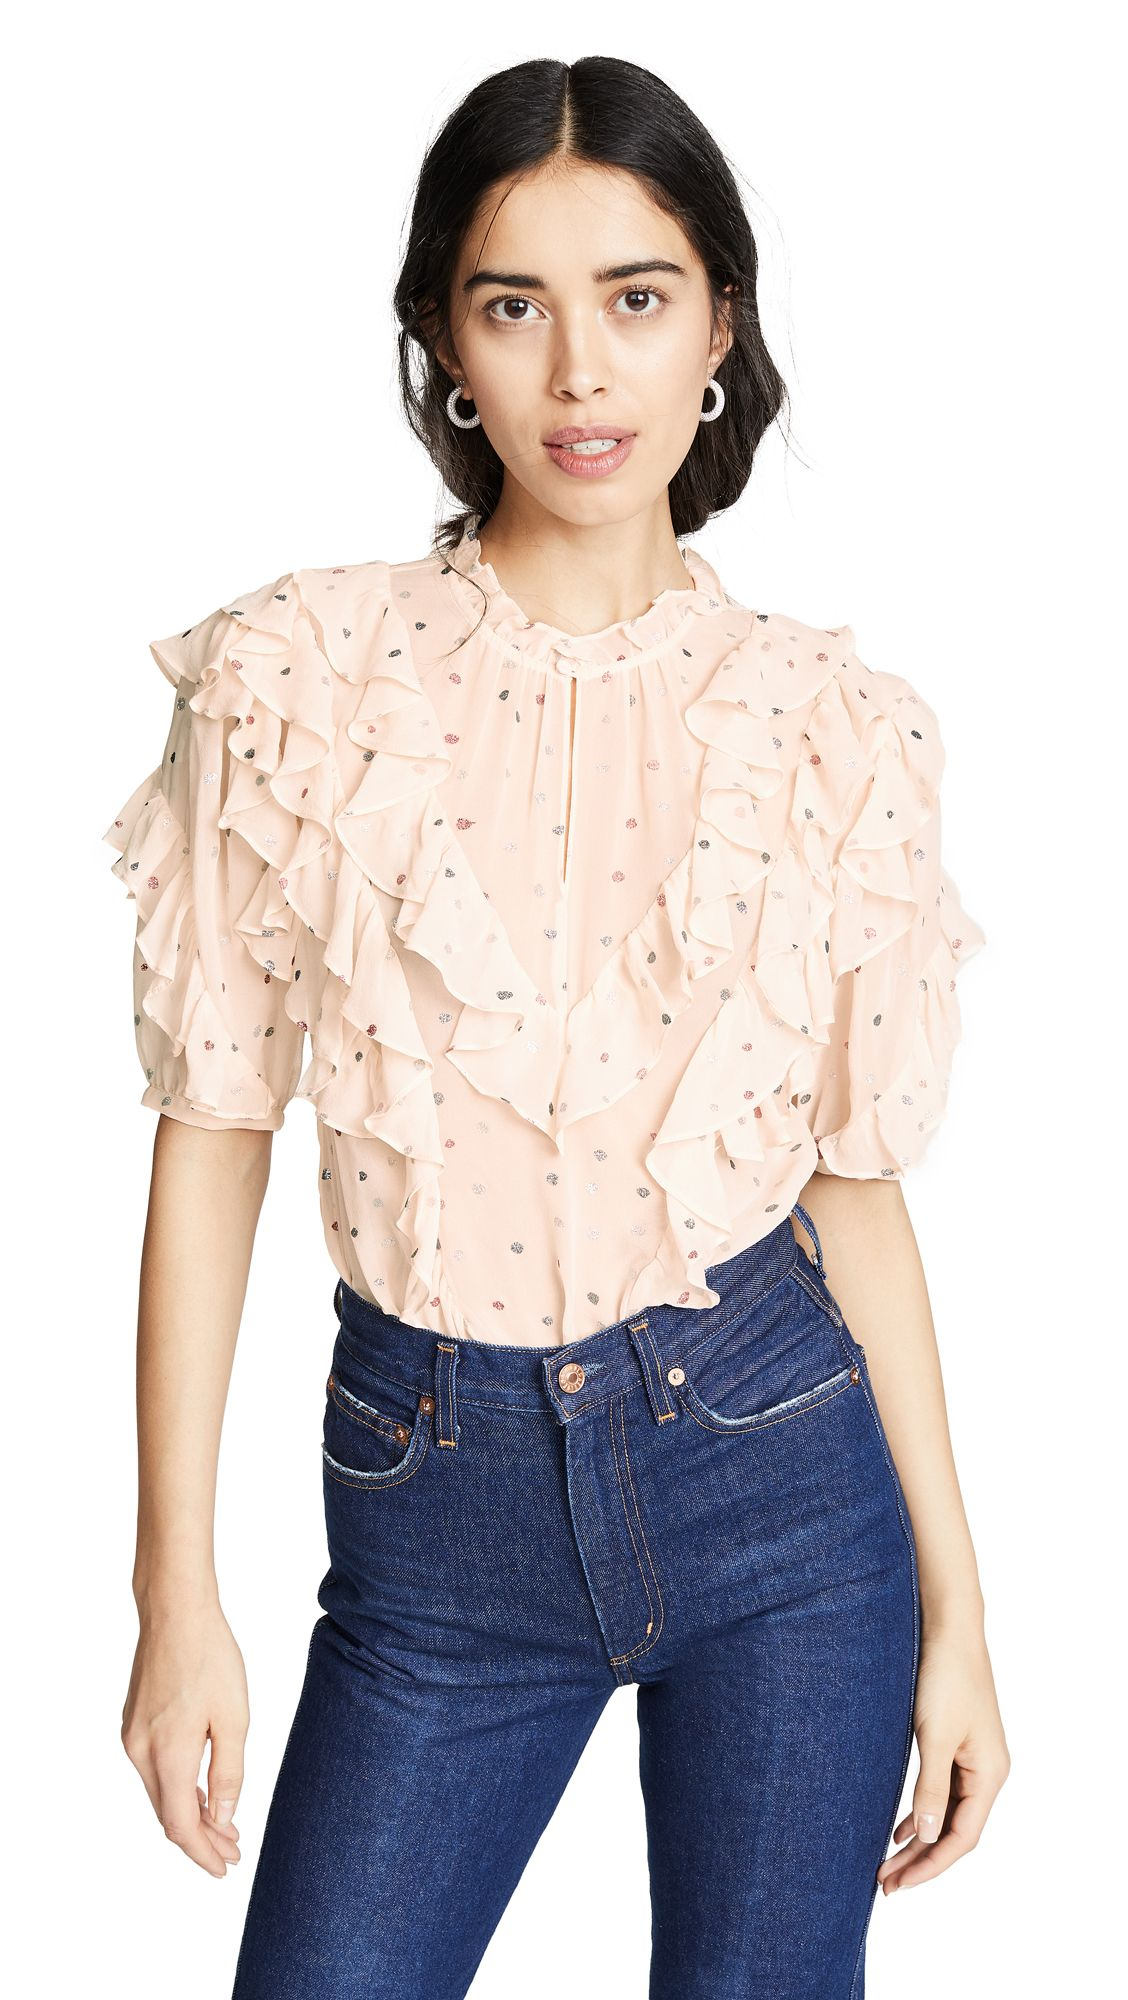 9d03cc2c94f6 Short Sleeve Glitter Top, #Mixed #Parfait #RebeccaTaylor  #ShortSleeveGlitterTop